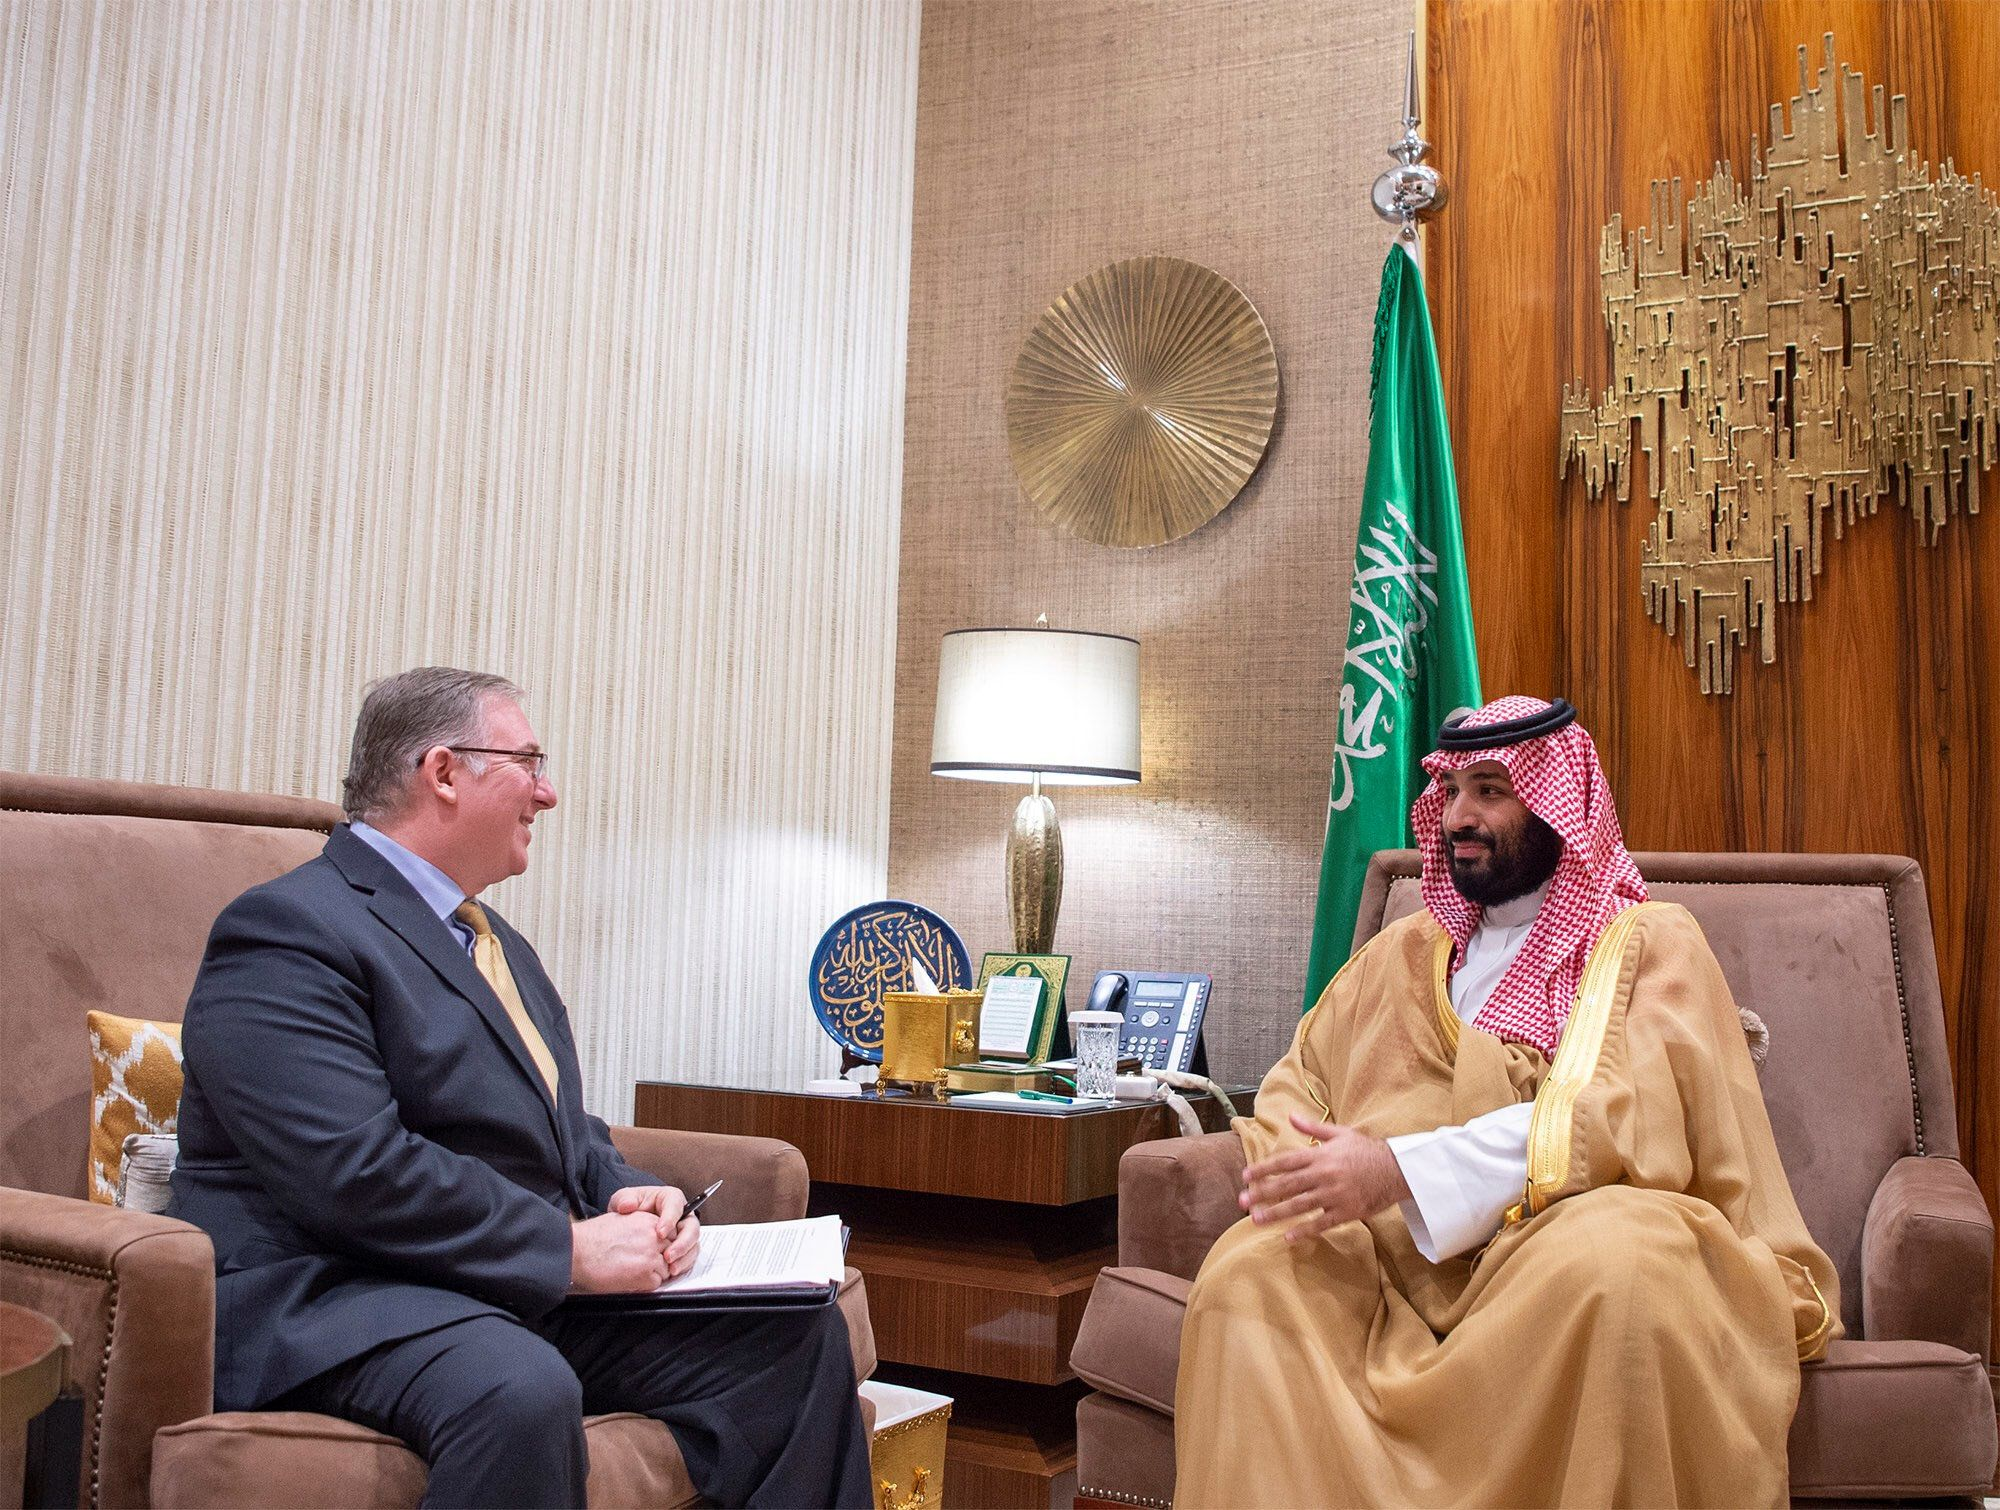 Conservative Candor >> Saudi Arabia's Crown Prince Hosts Rare Meeting With American Evangelical Christians | HuffPost